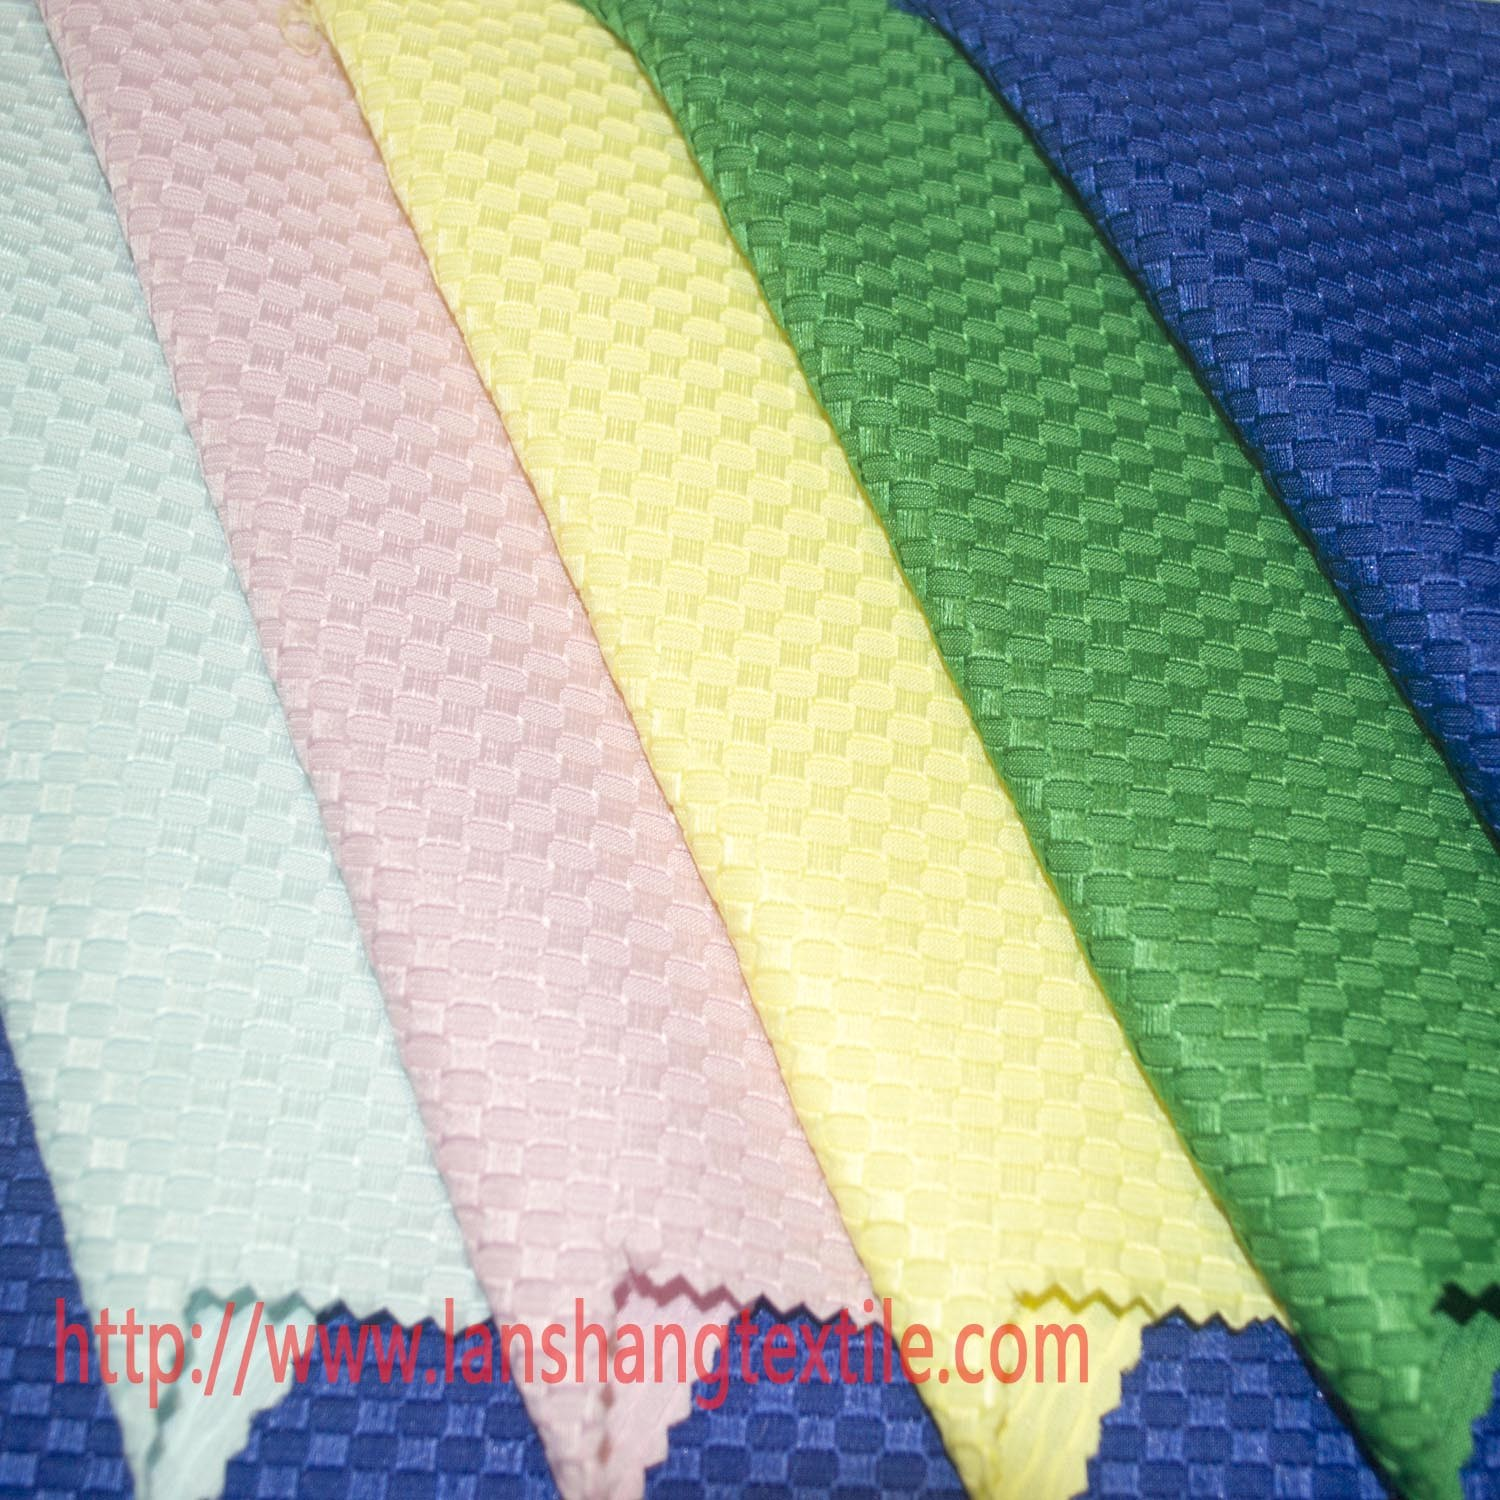 Polyester Fabric Chemical Fabric Jacquard Dyed Fabric for Garment Dress Printing pictures & photos